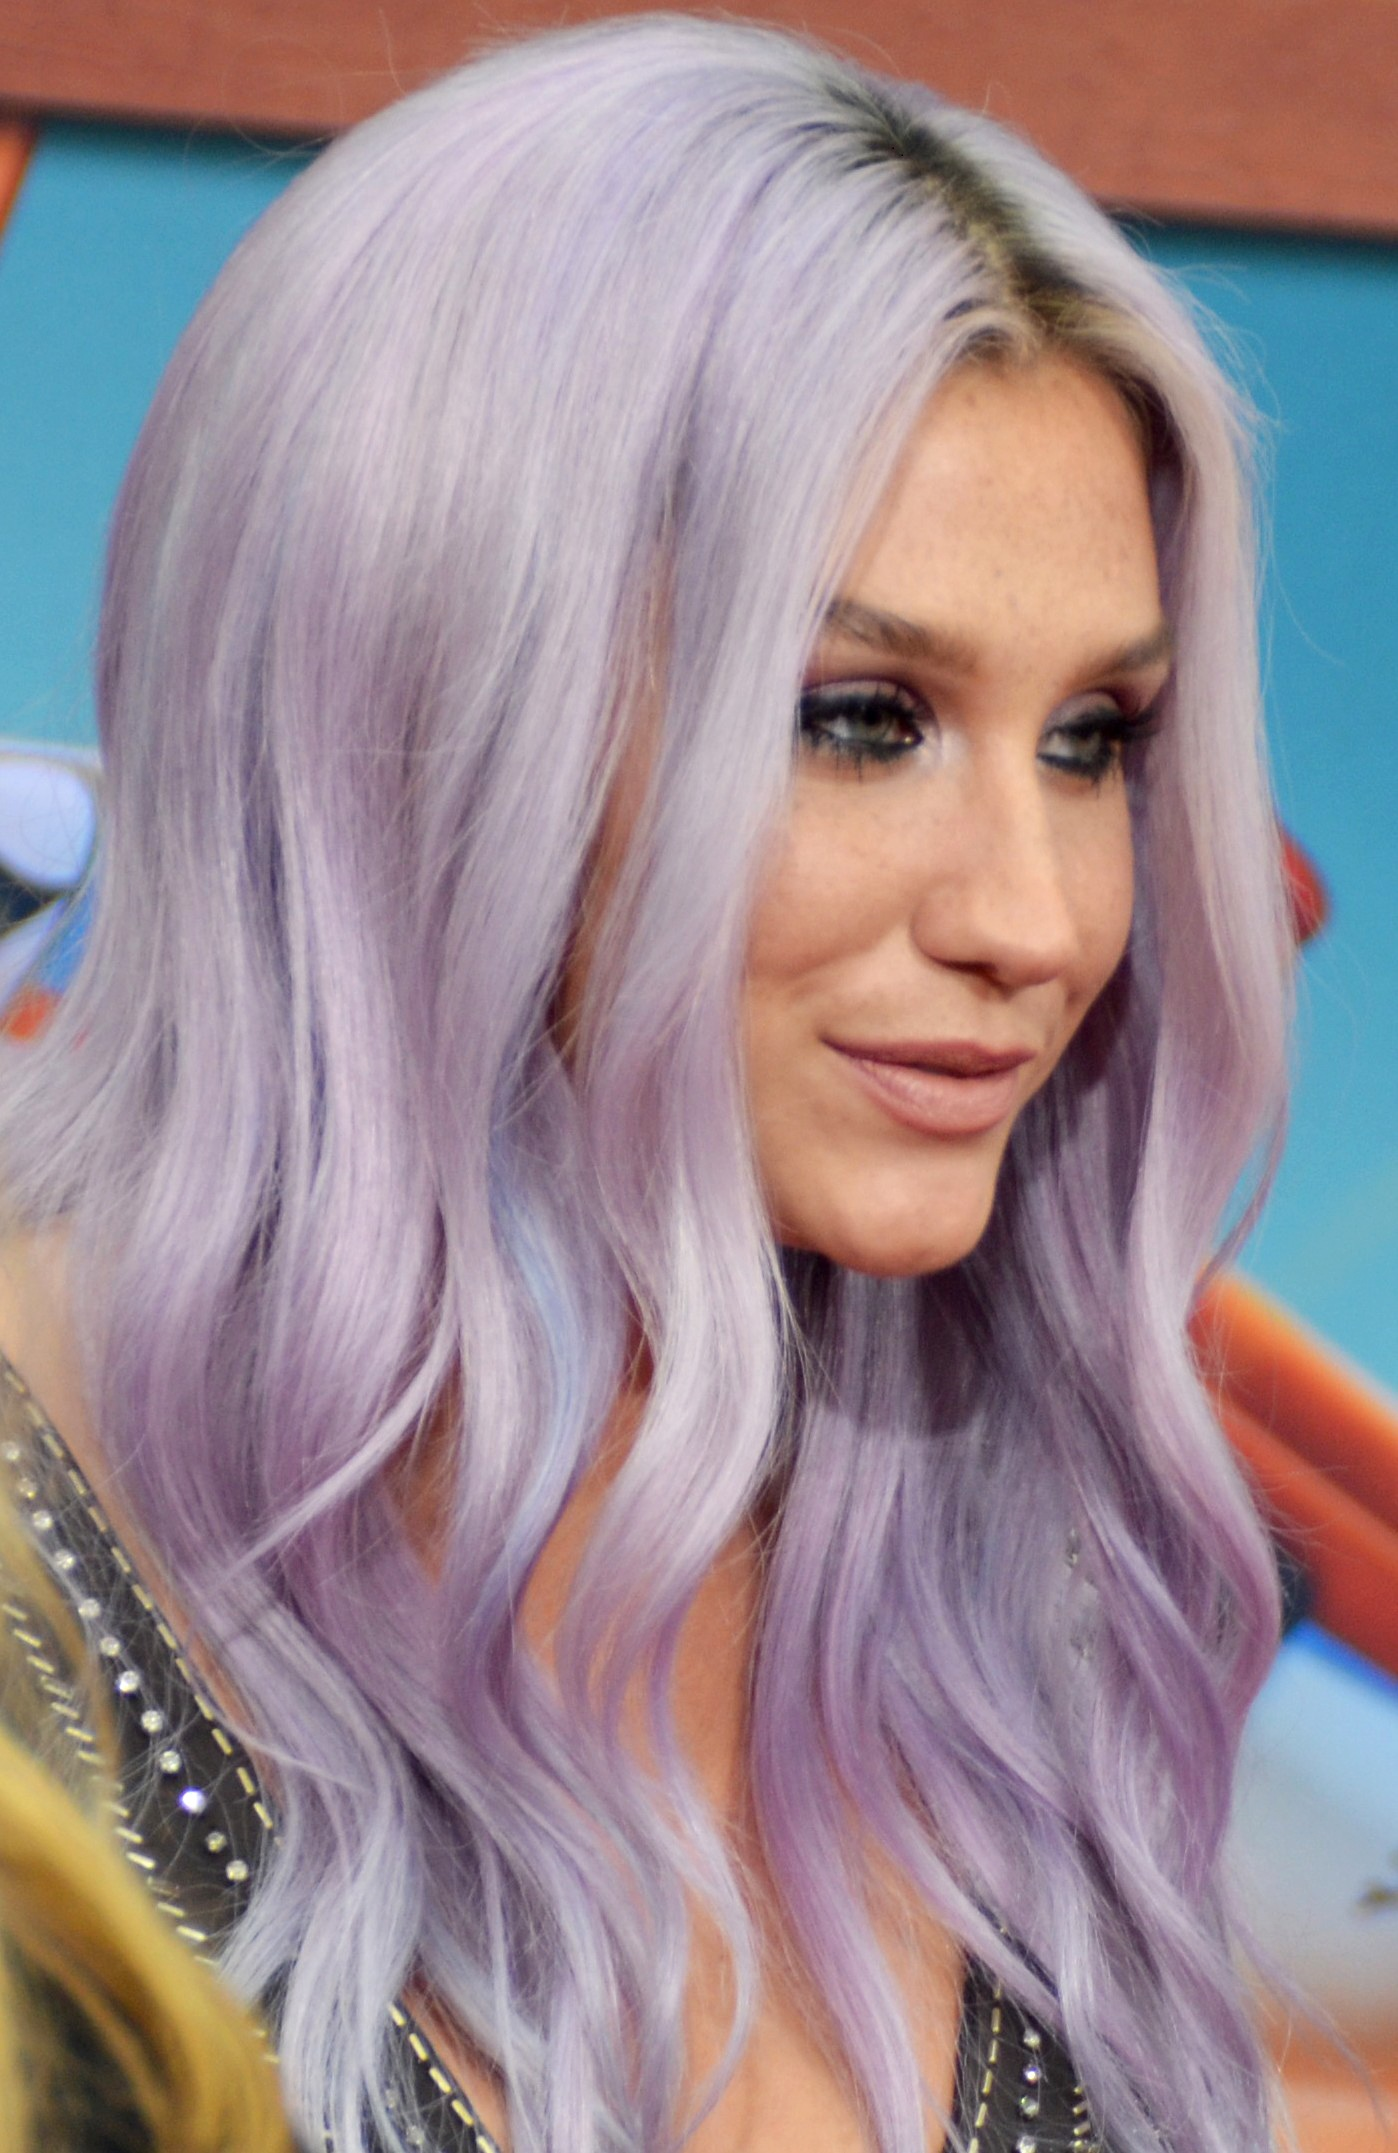 """The 31-year old daughter of father (?) and mother Patricia Rose """"Pebe"""" Sebert Ke$ha in 2018 photo. Ke$ha earned a  million dollar salary - leaving the net worth at 9 million in 2018"""